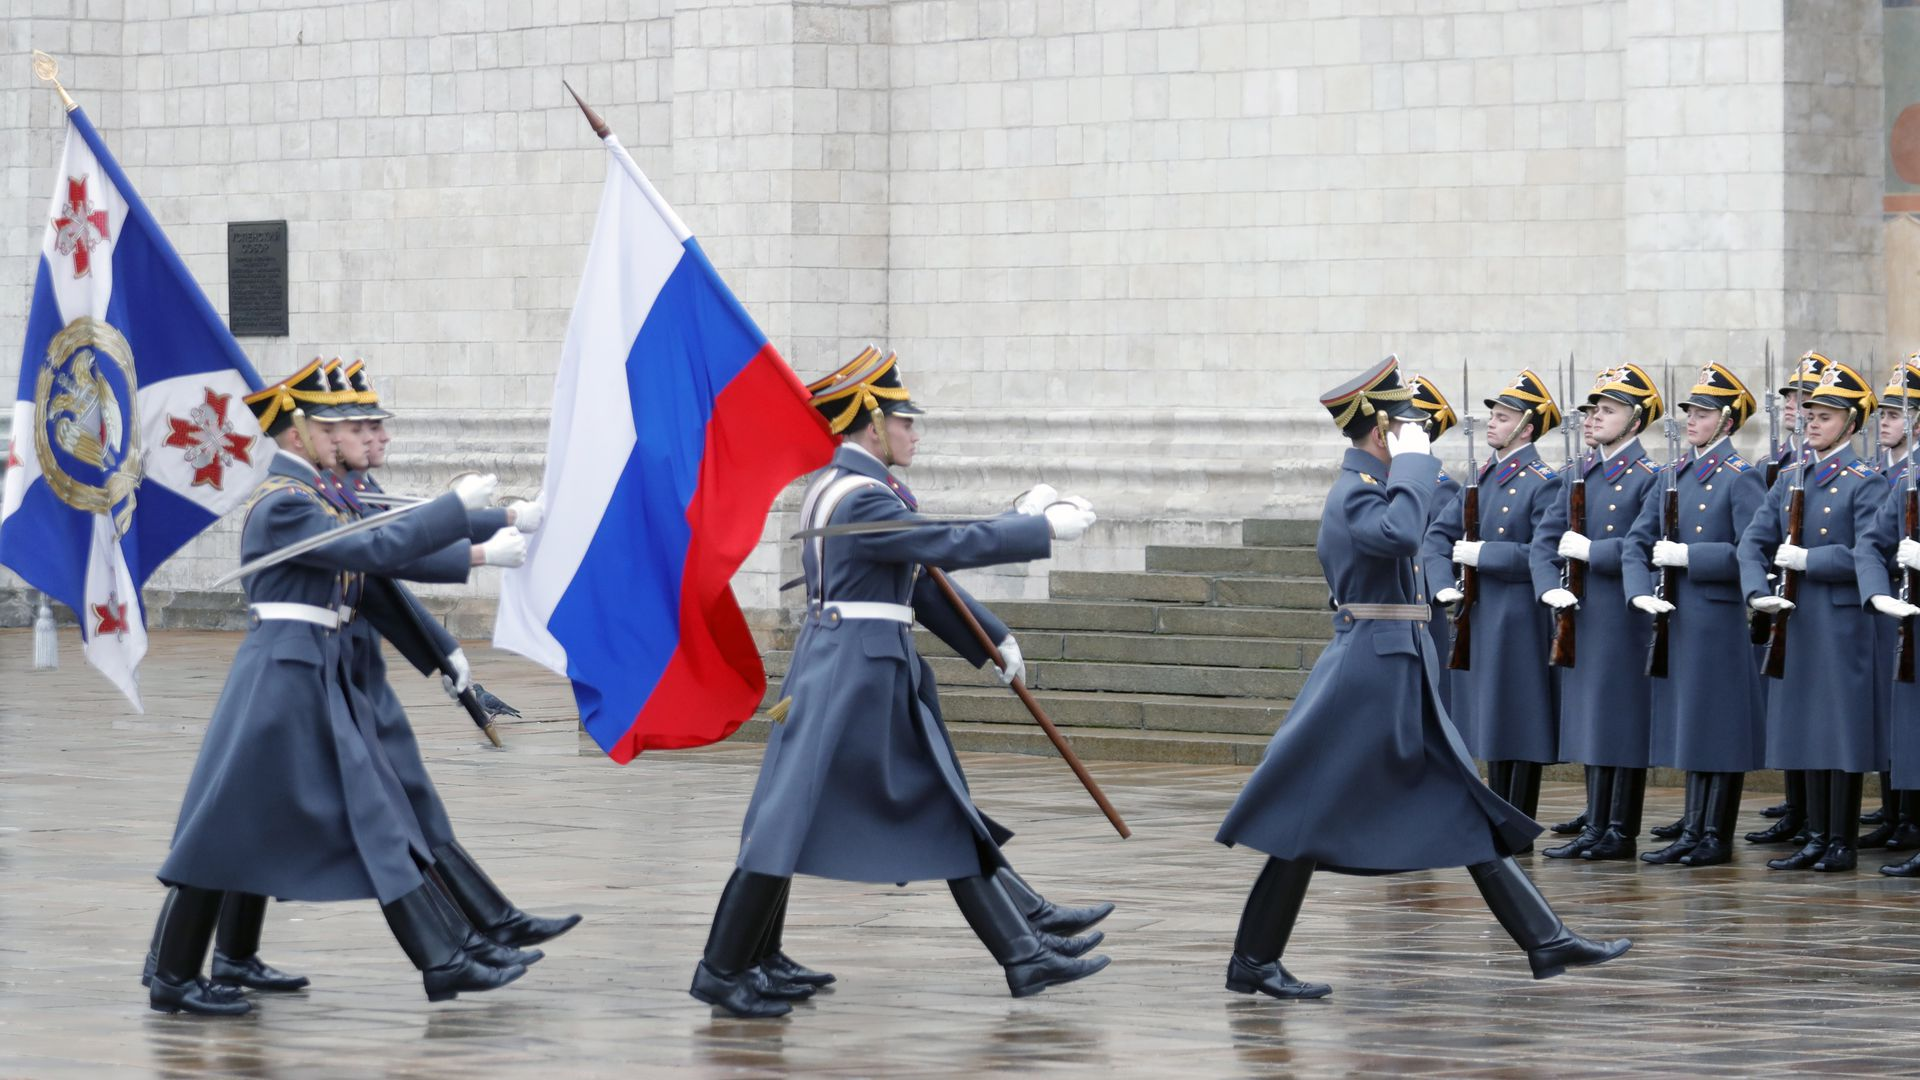 Kremlin mounting of the guard